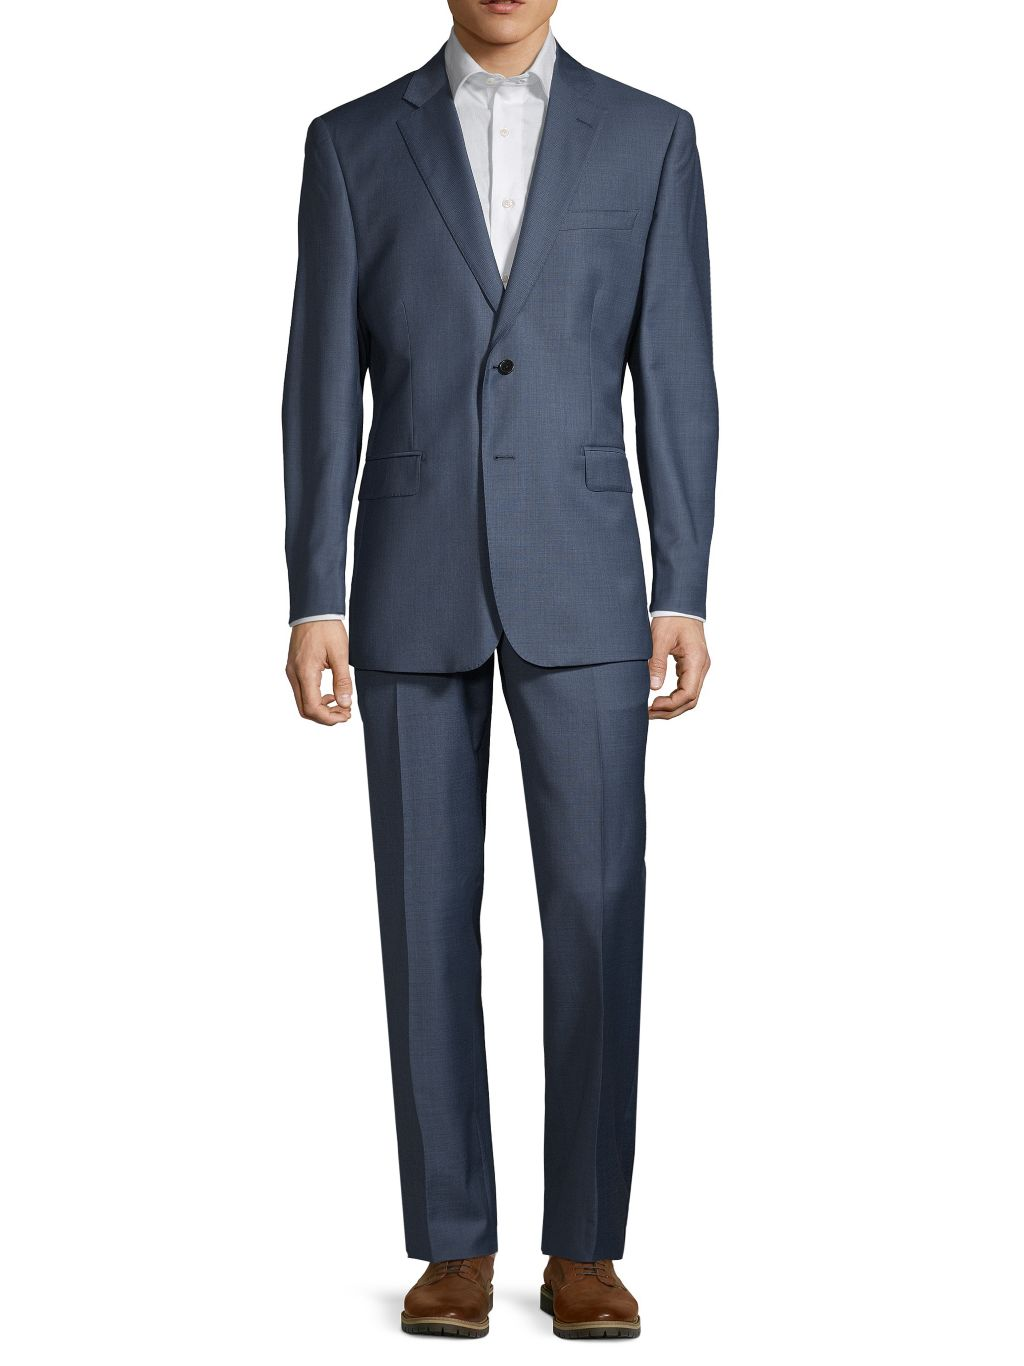 Saks Fifth Avenue Made in Italy Slim-Fit Sharkskin Wool Suit